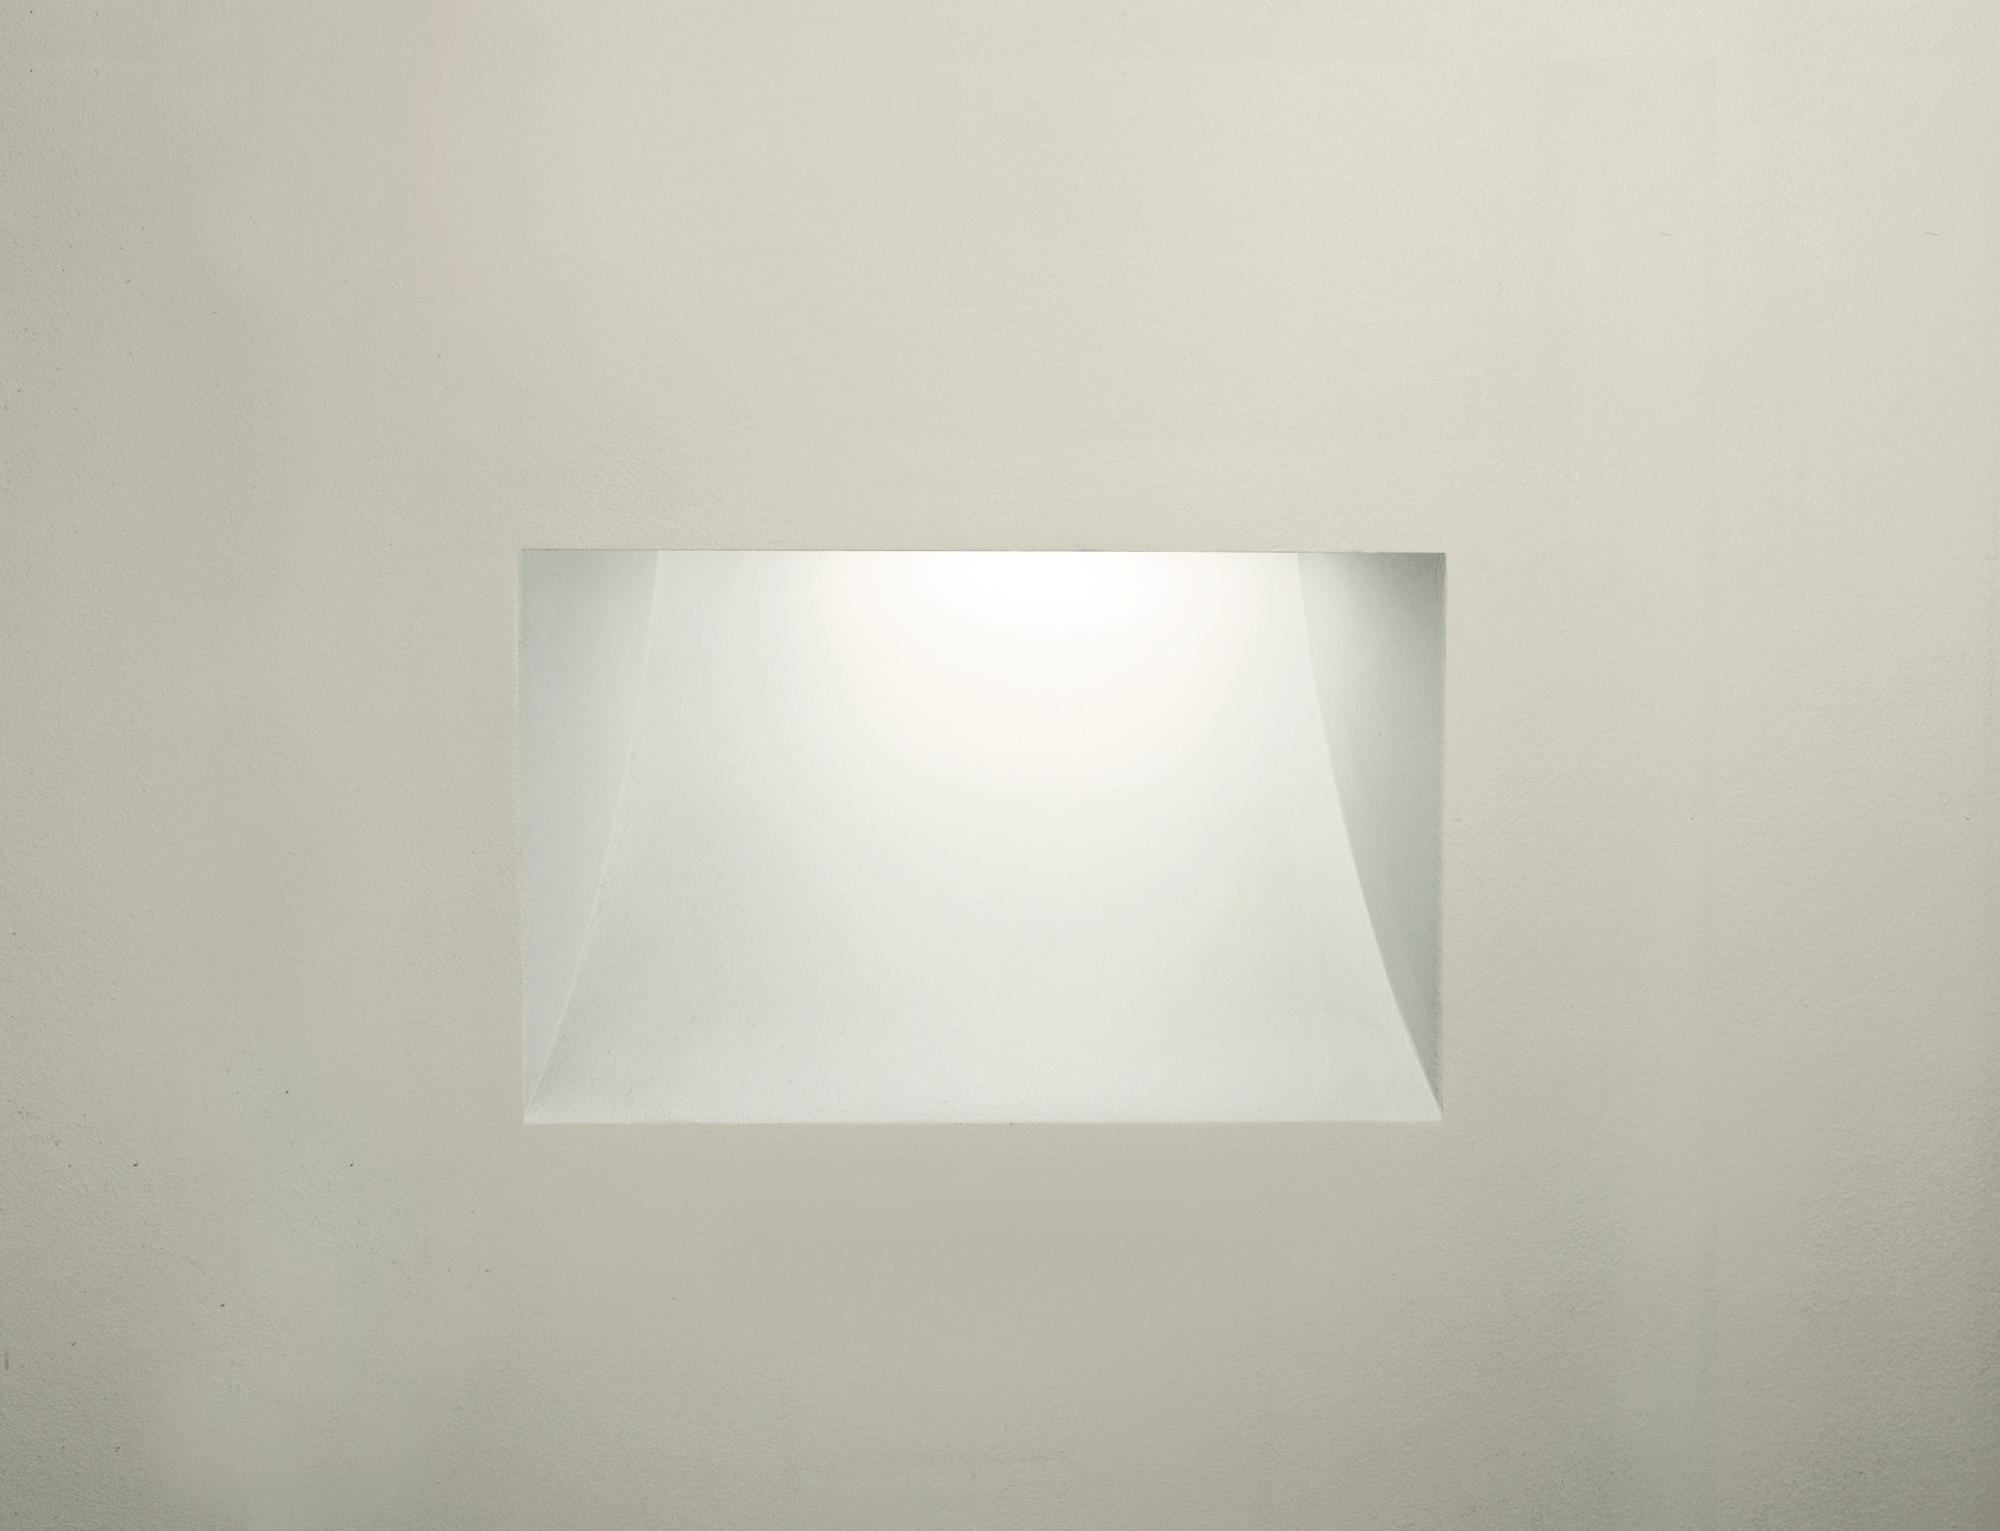 Engineered Lighting Products Hole In The Wall Architect Magazine Lighting Drywall